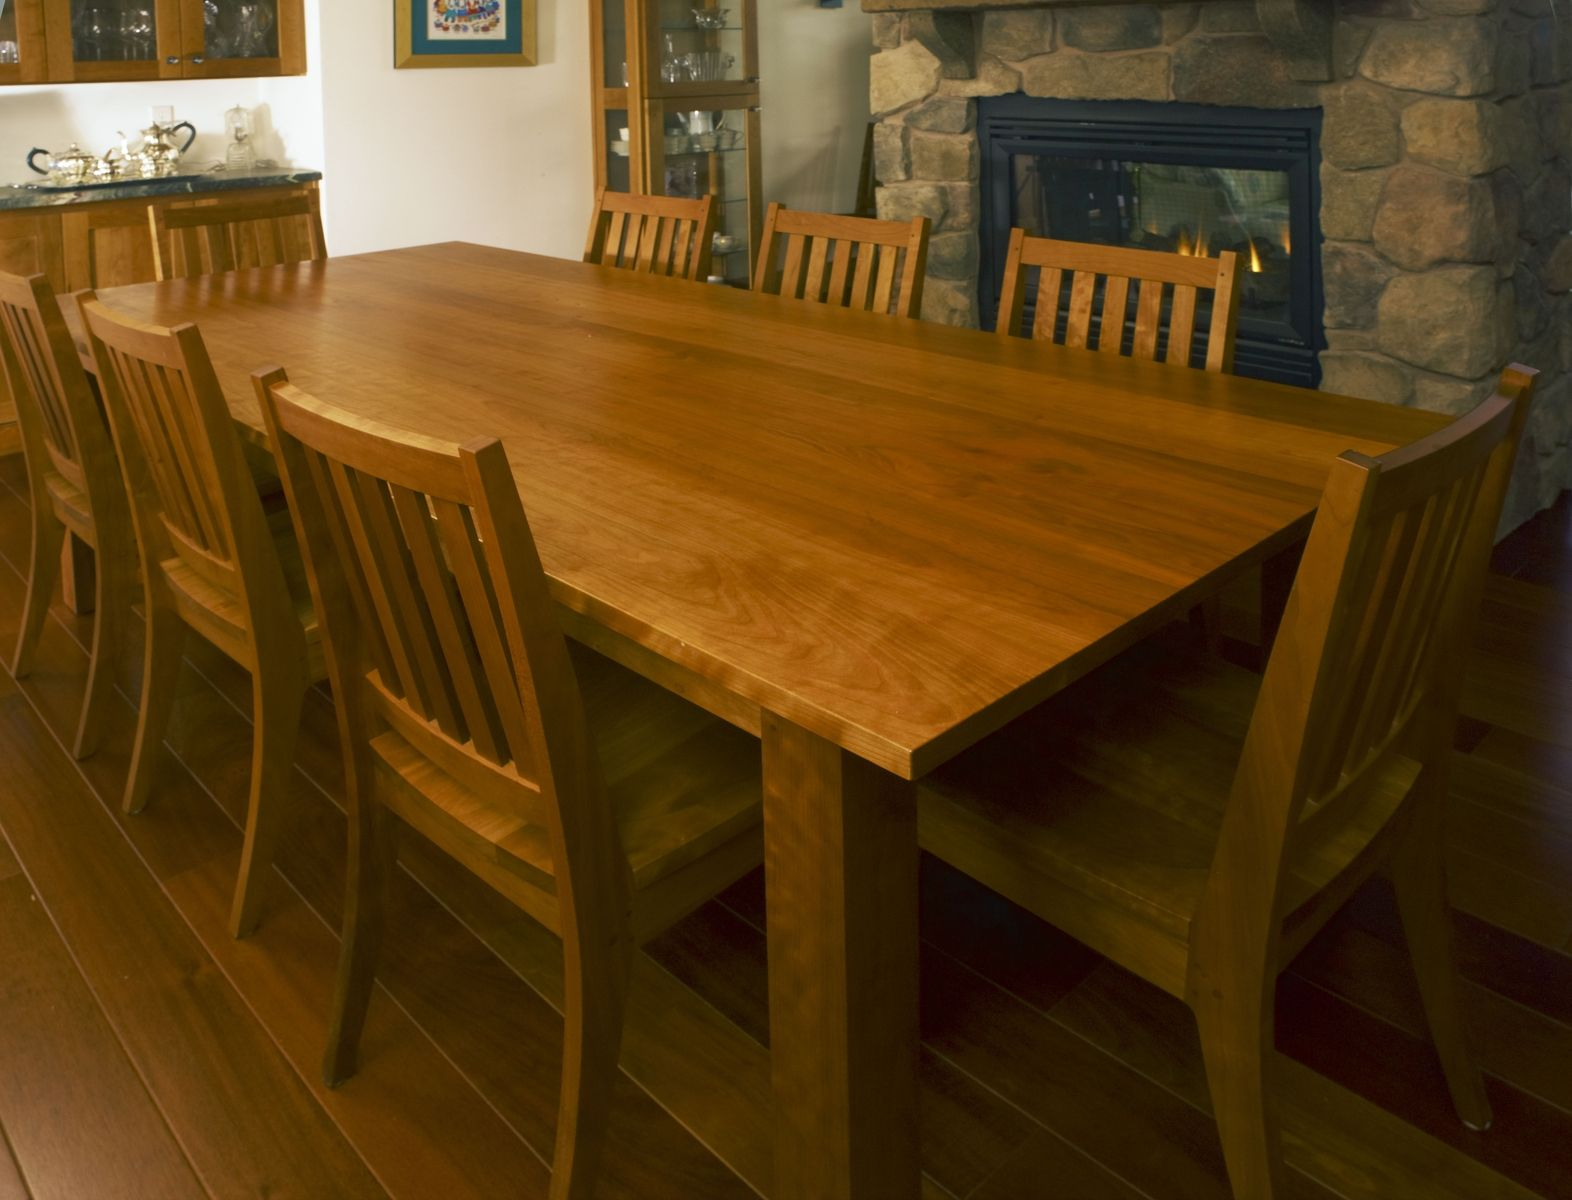 custom restaurant tables and chairs kids high chair booster seat hand made cherry dining table by kinion